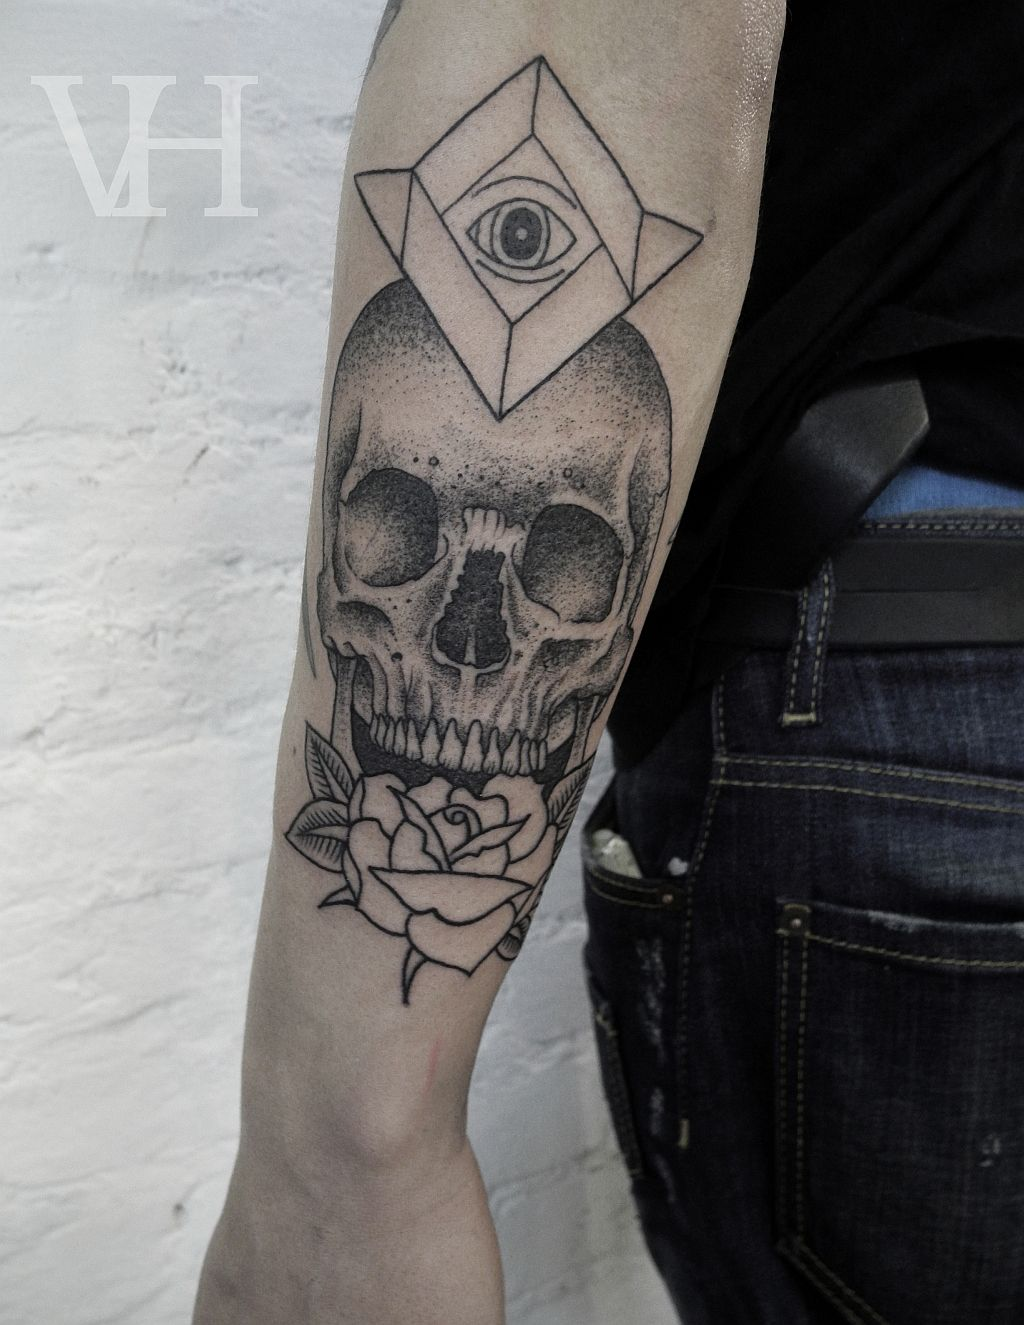 b881663a3 skull, rose, and all-seeing eye tattoo by valentin hirsch | โปรเจกต์ ...